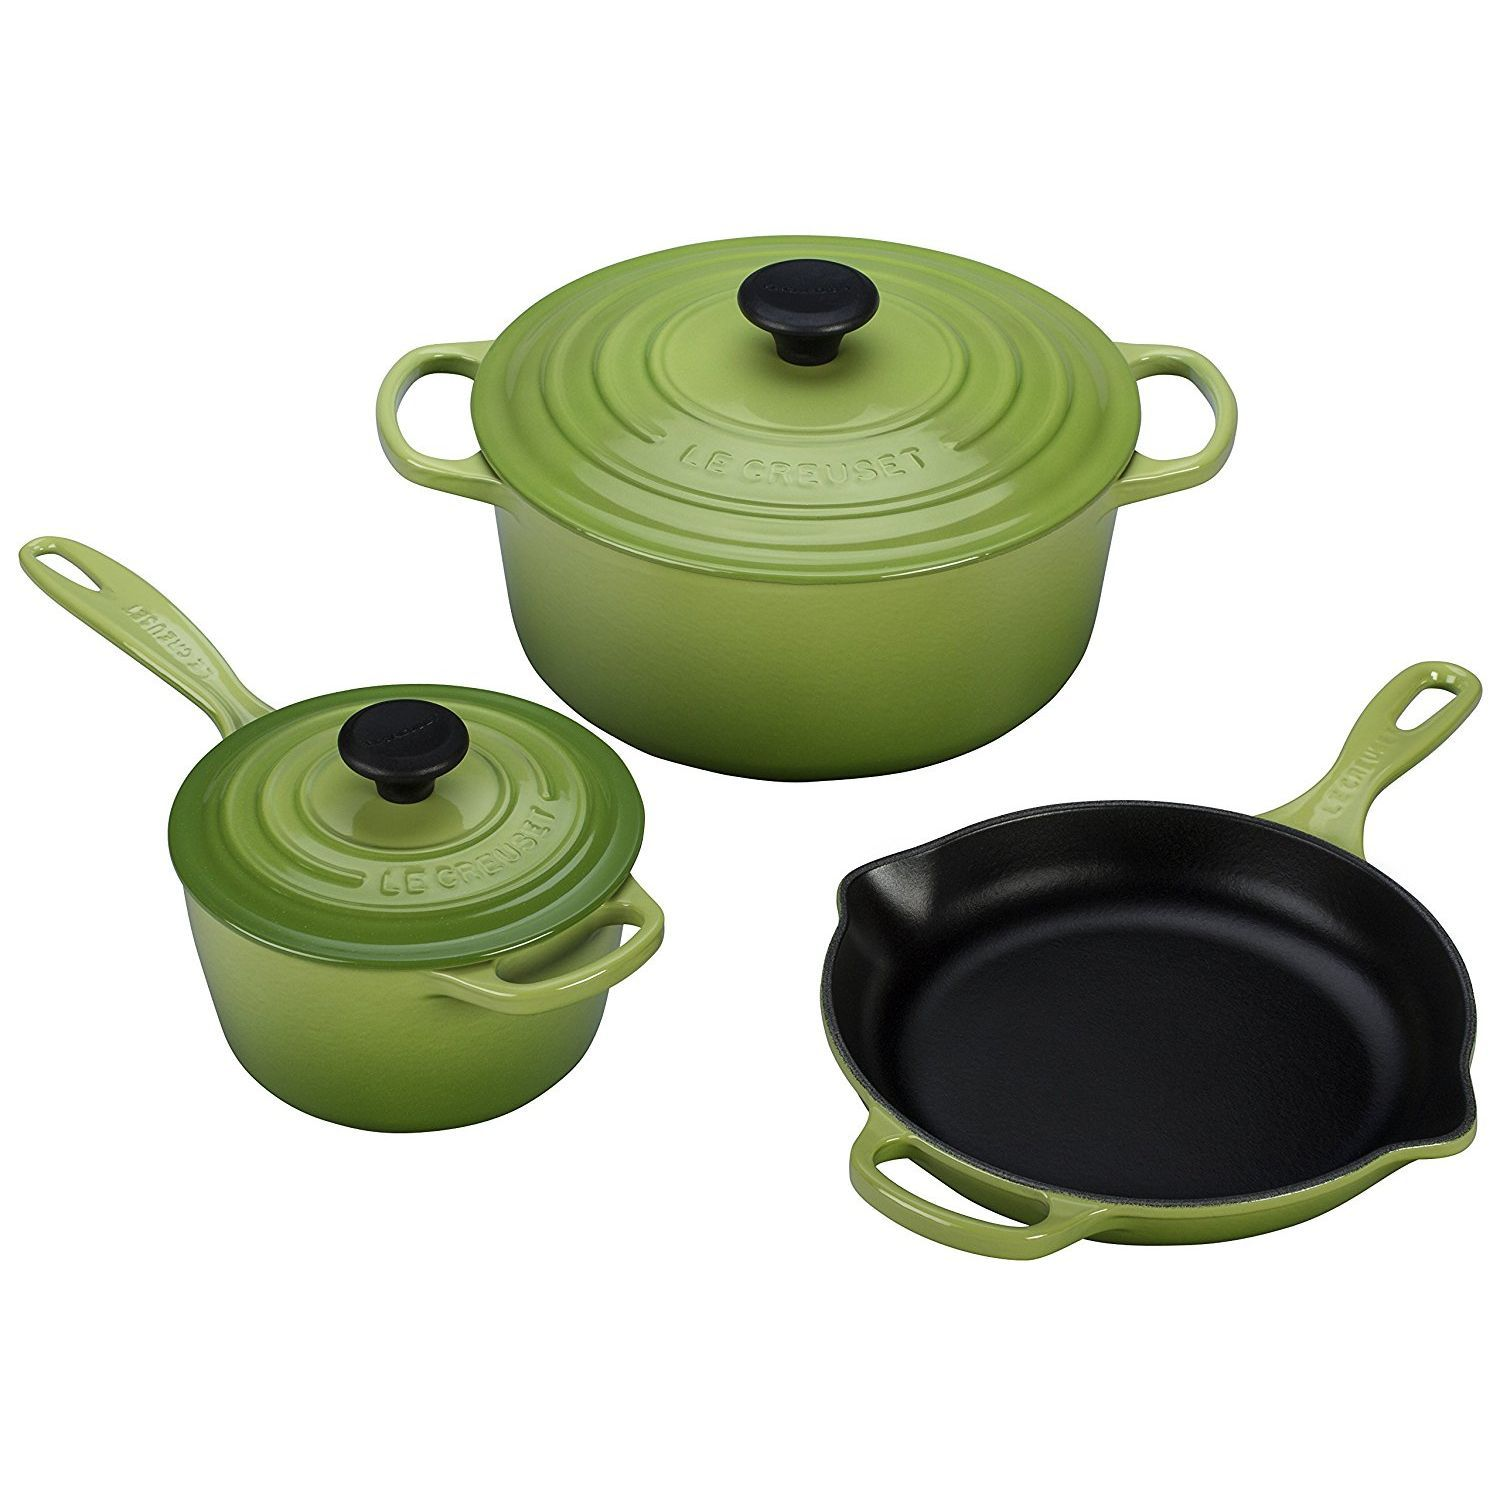 Le Creuset 5 Piece Signature Enameled Cast Iron Cookware Set, Palm ...